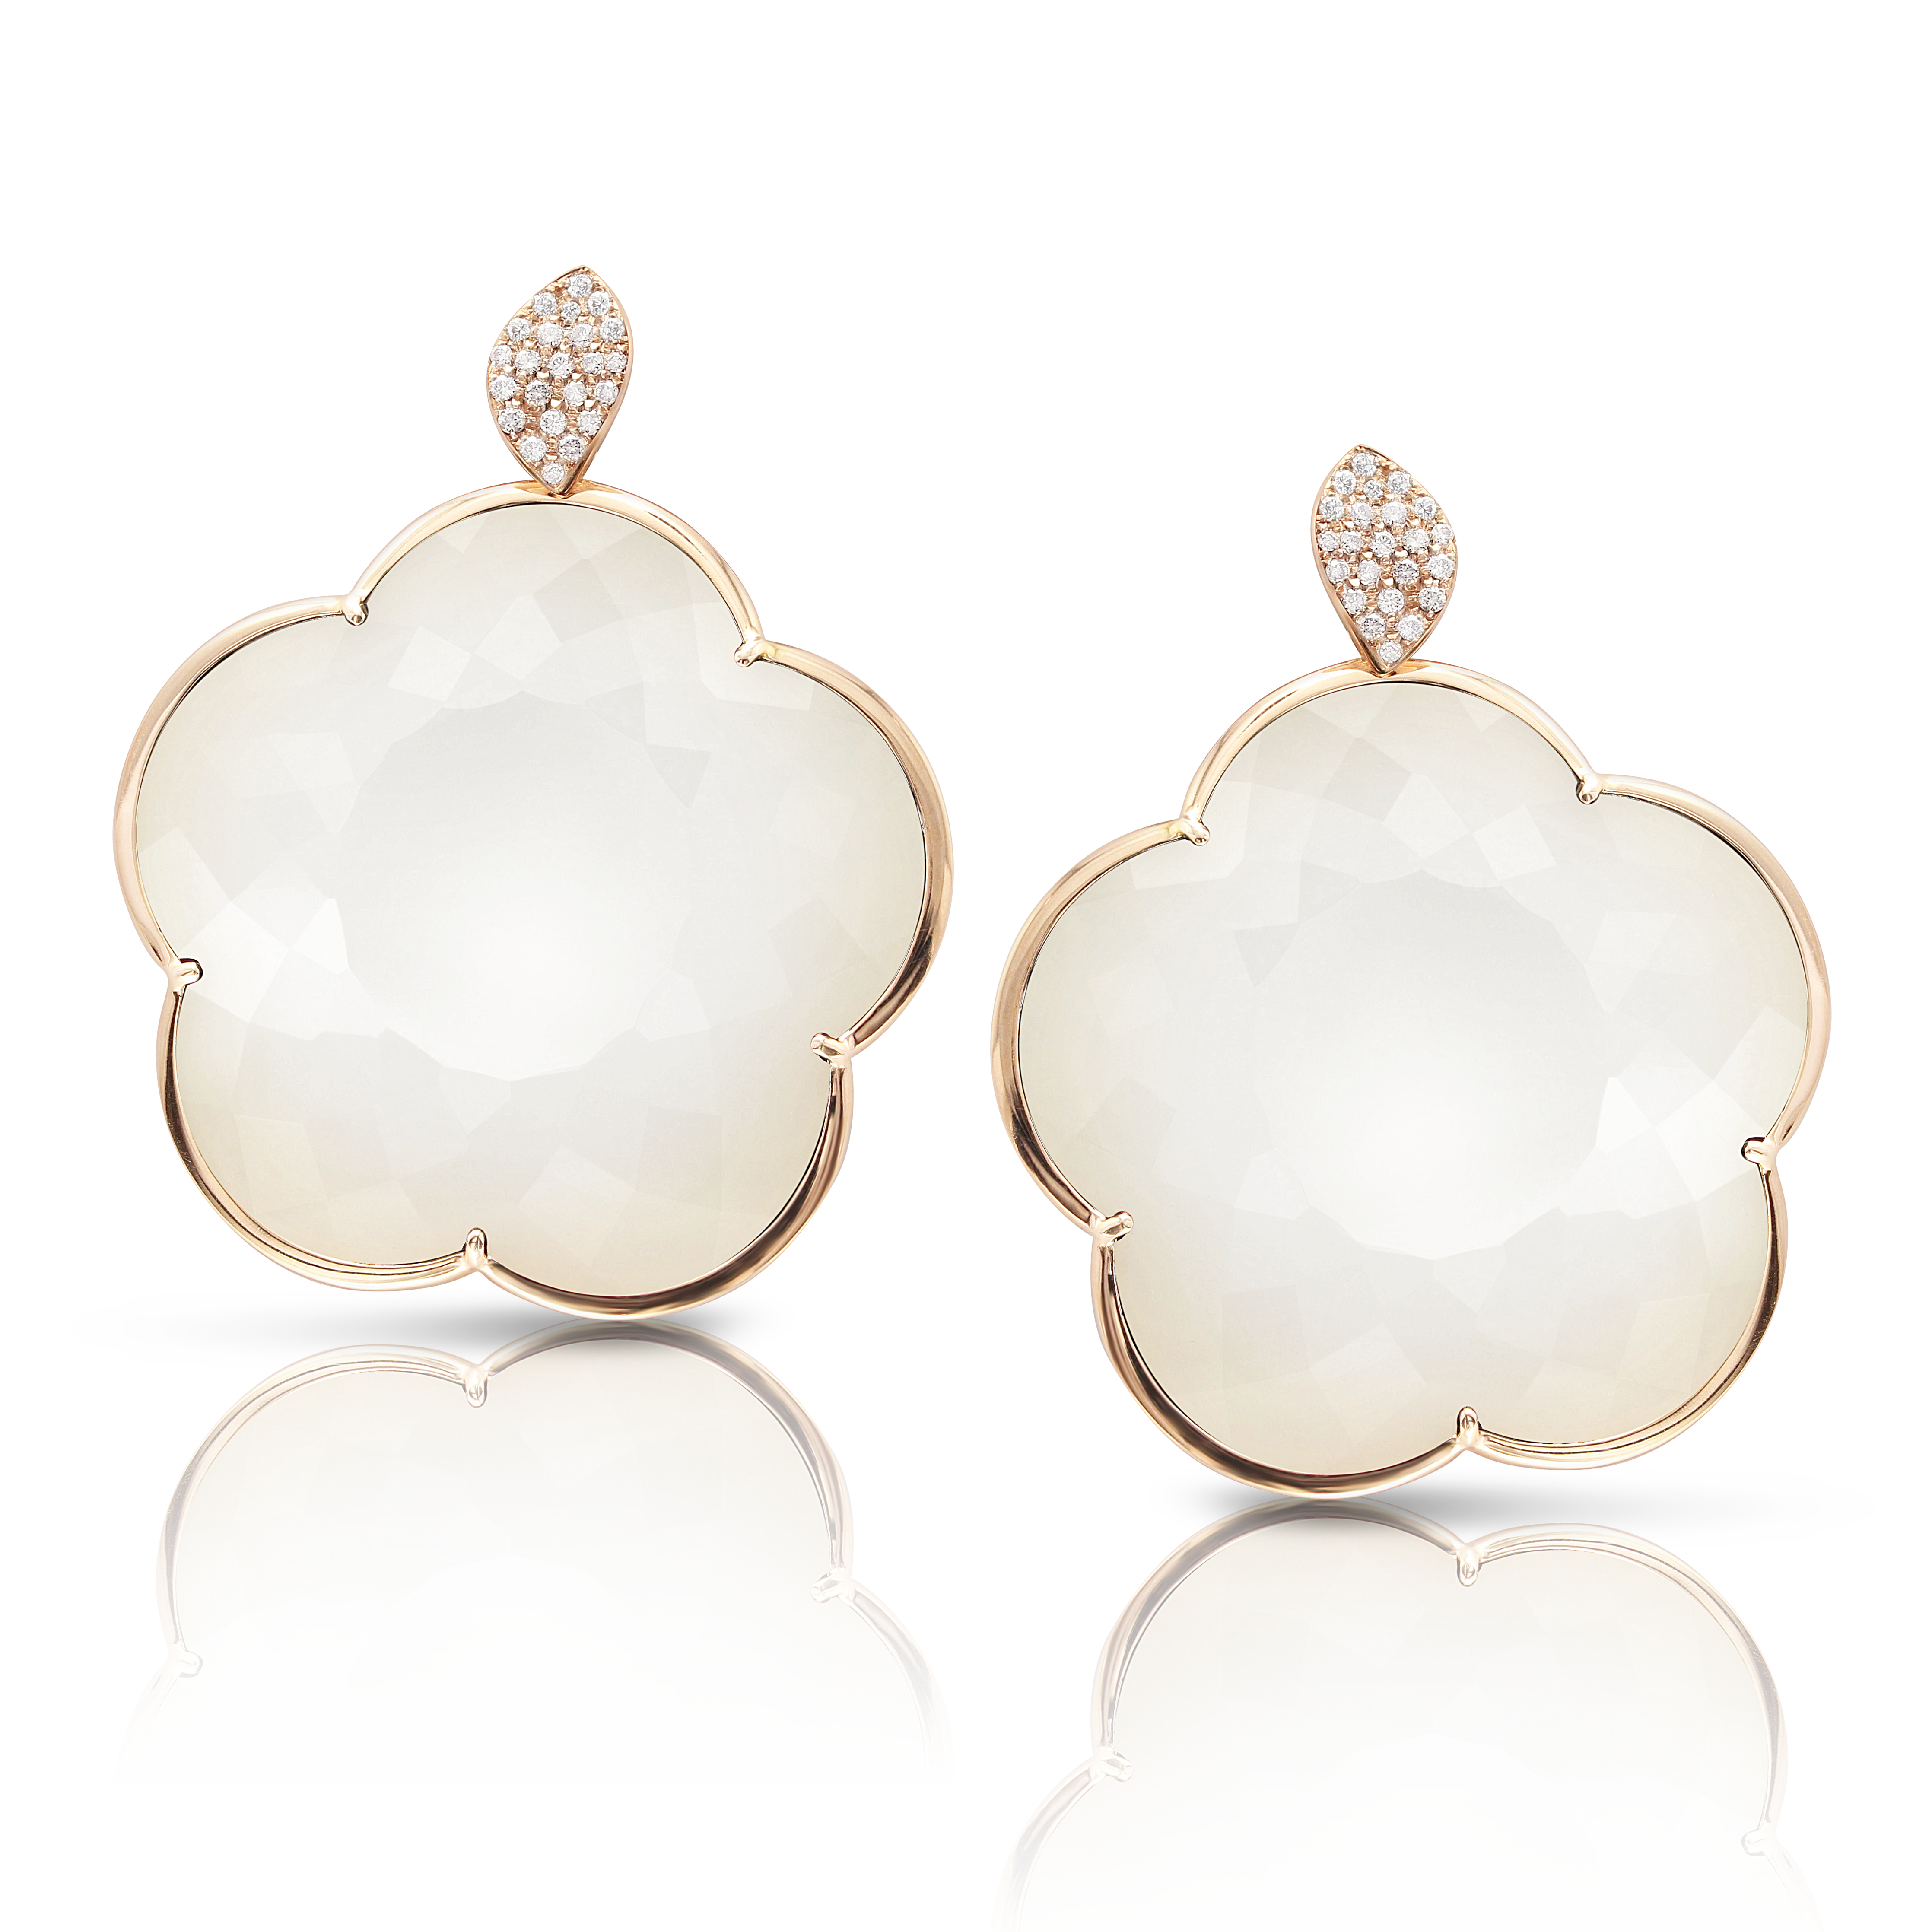 18k Rose Gold Ton Joli Earrings with White Agate, Mother of Pearl and Diamonds